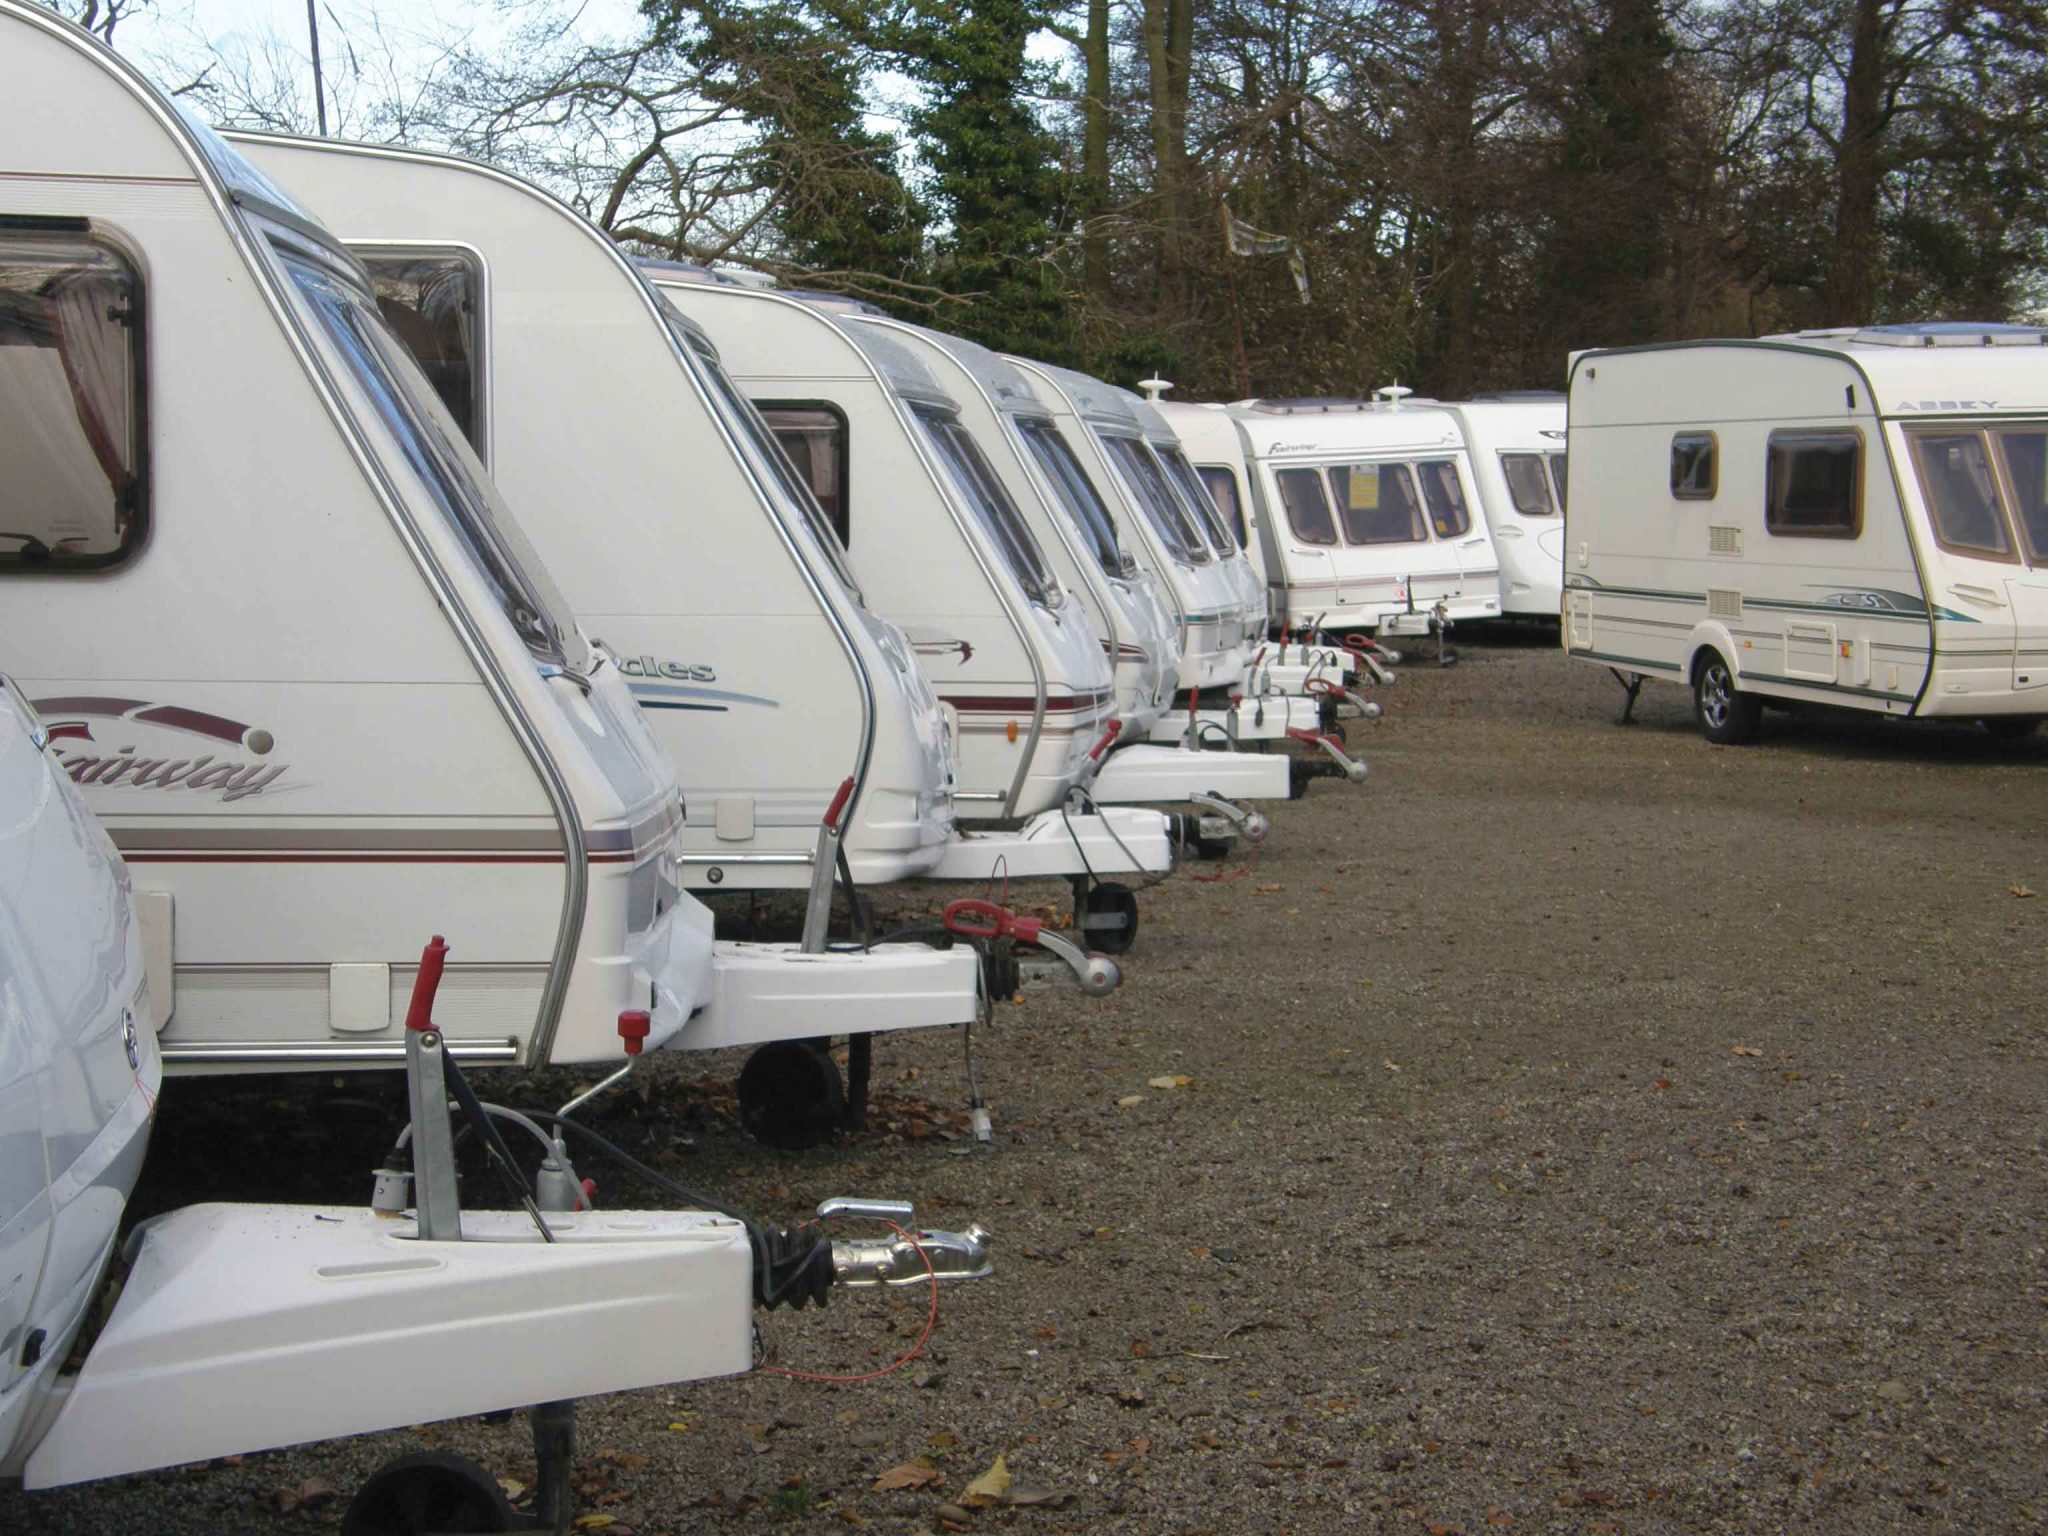 5 Essential Things to Consider When Purchasing a Caravan